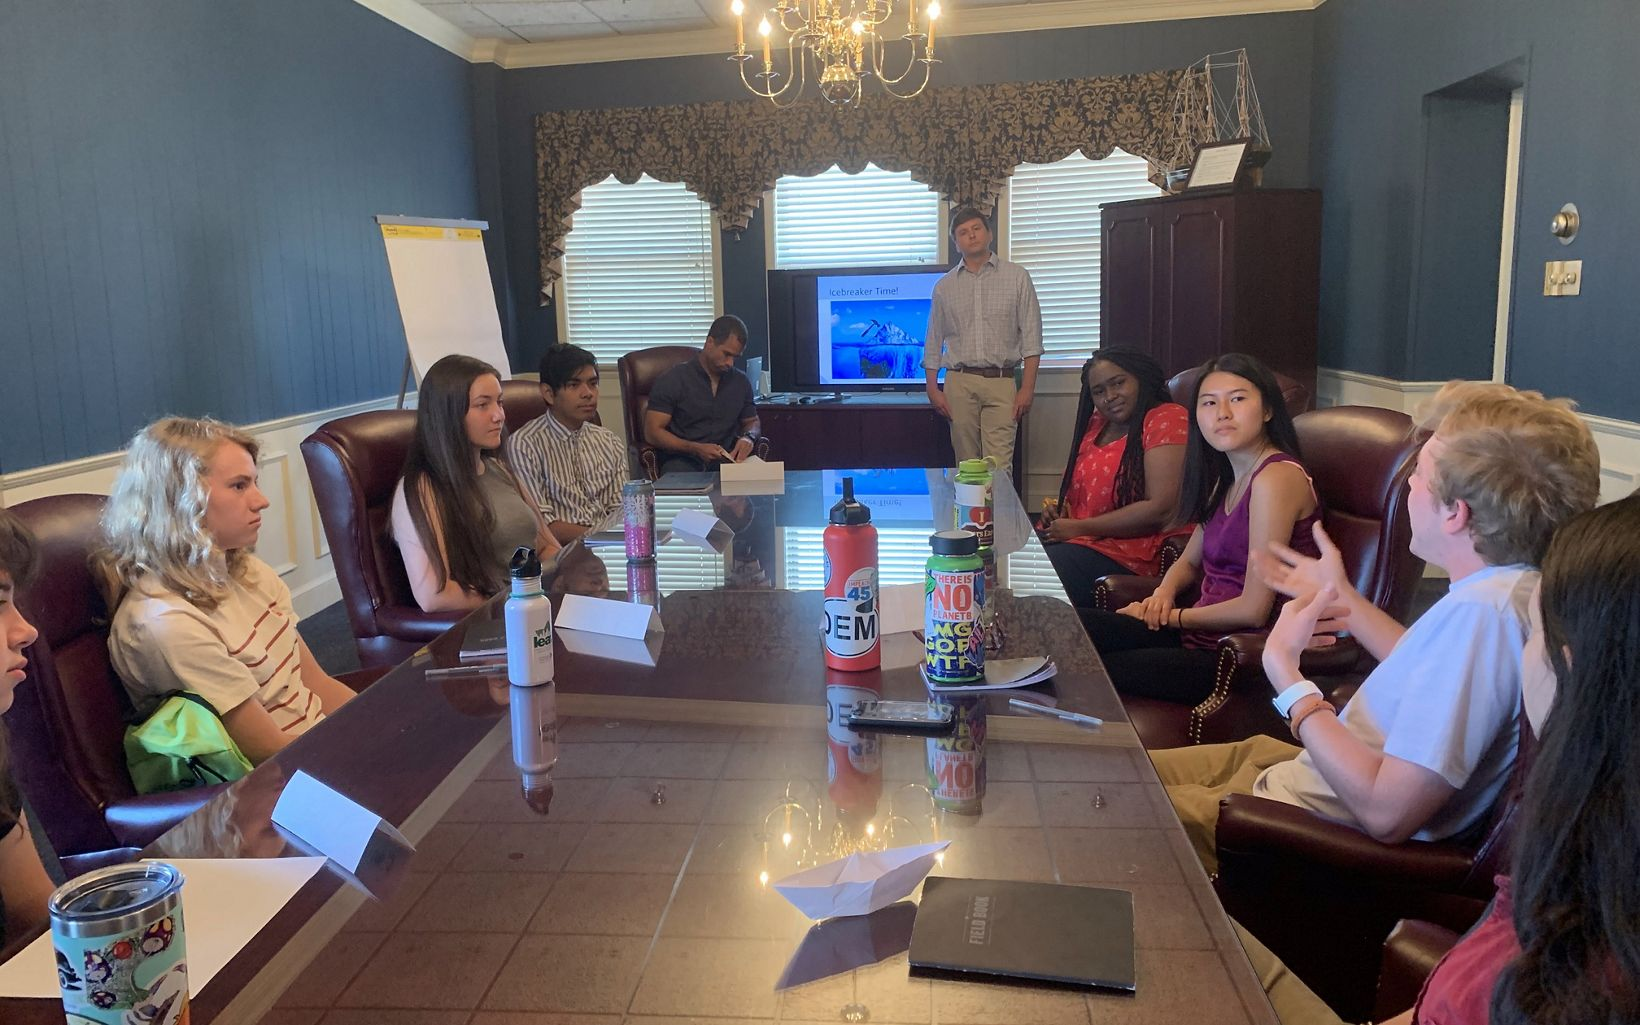 TNC staff lead western Maryland LEAF interns through advocacy training in preparation for meeting with local elected officials.